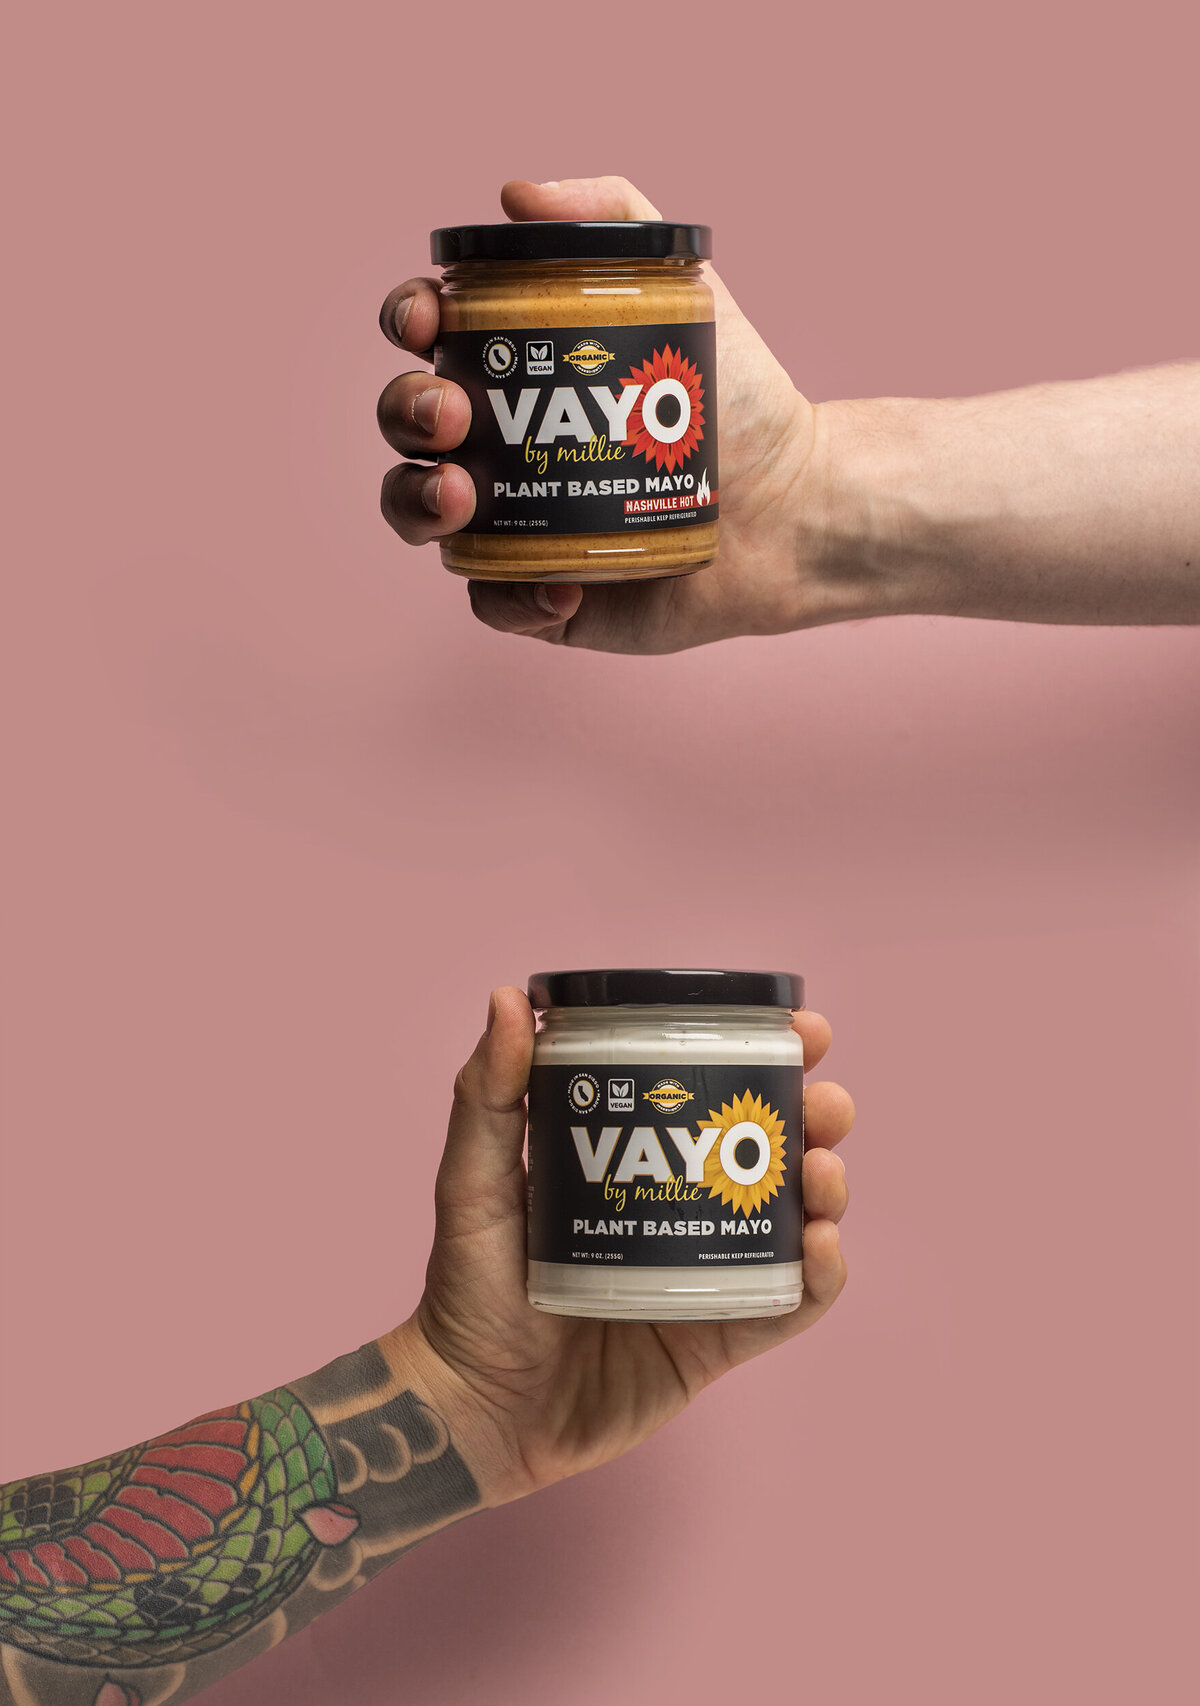 los-angeles-product-photographer-vegan-mayo-lindsay-kreighbaum3